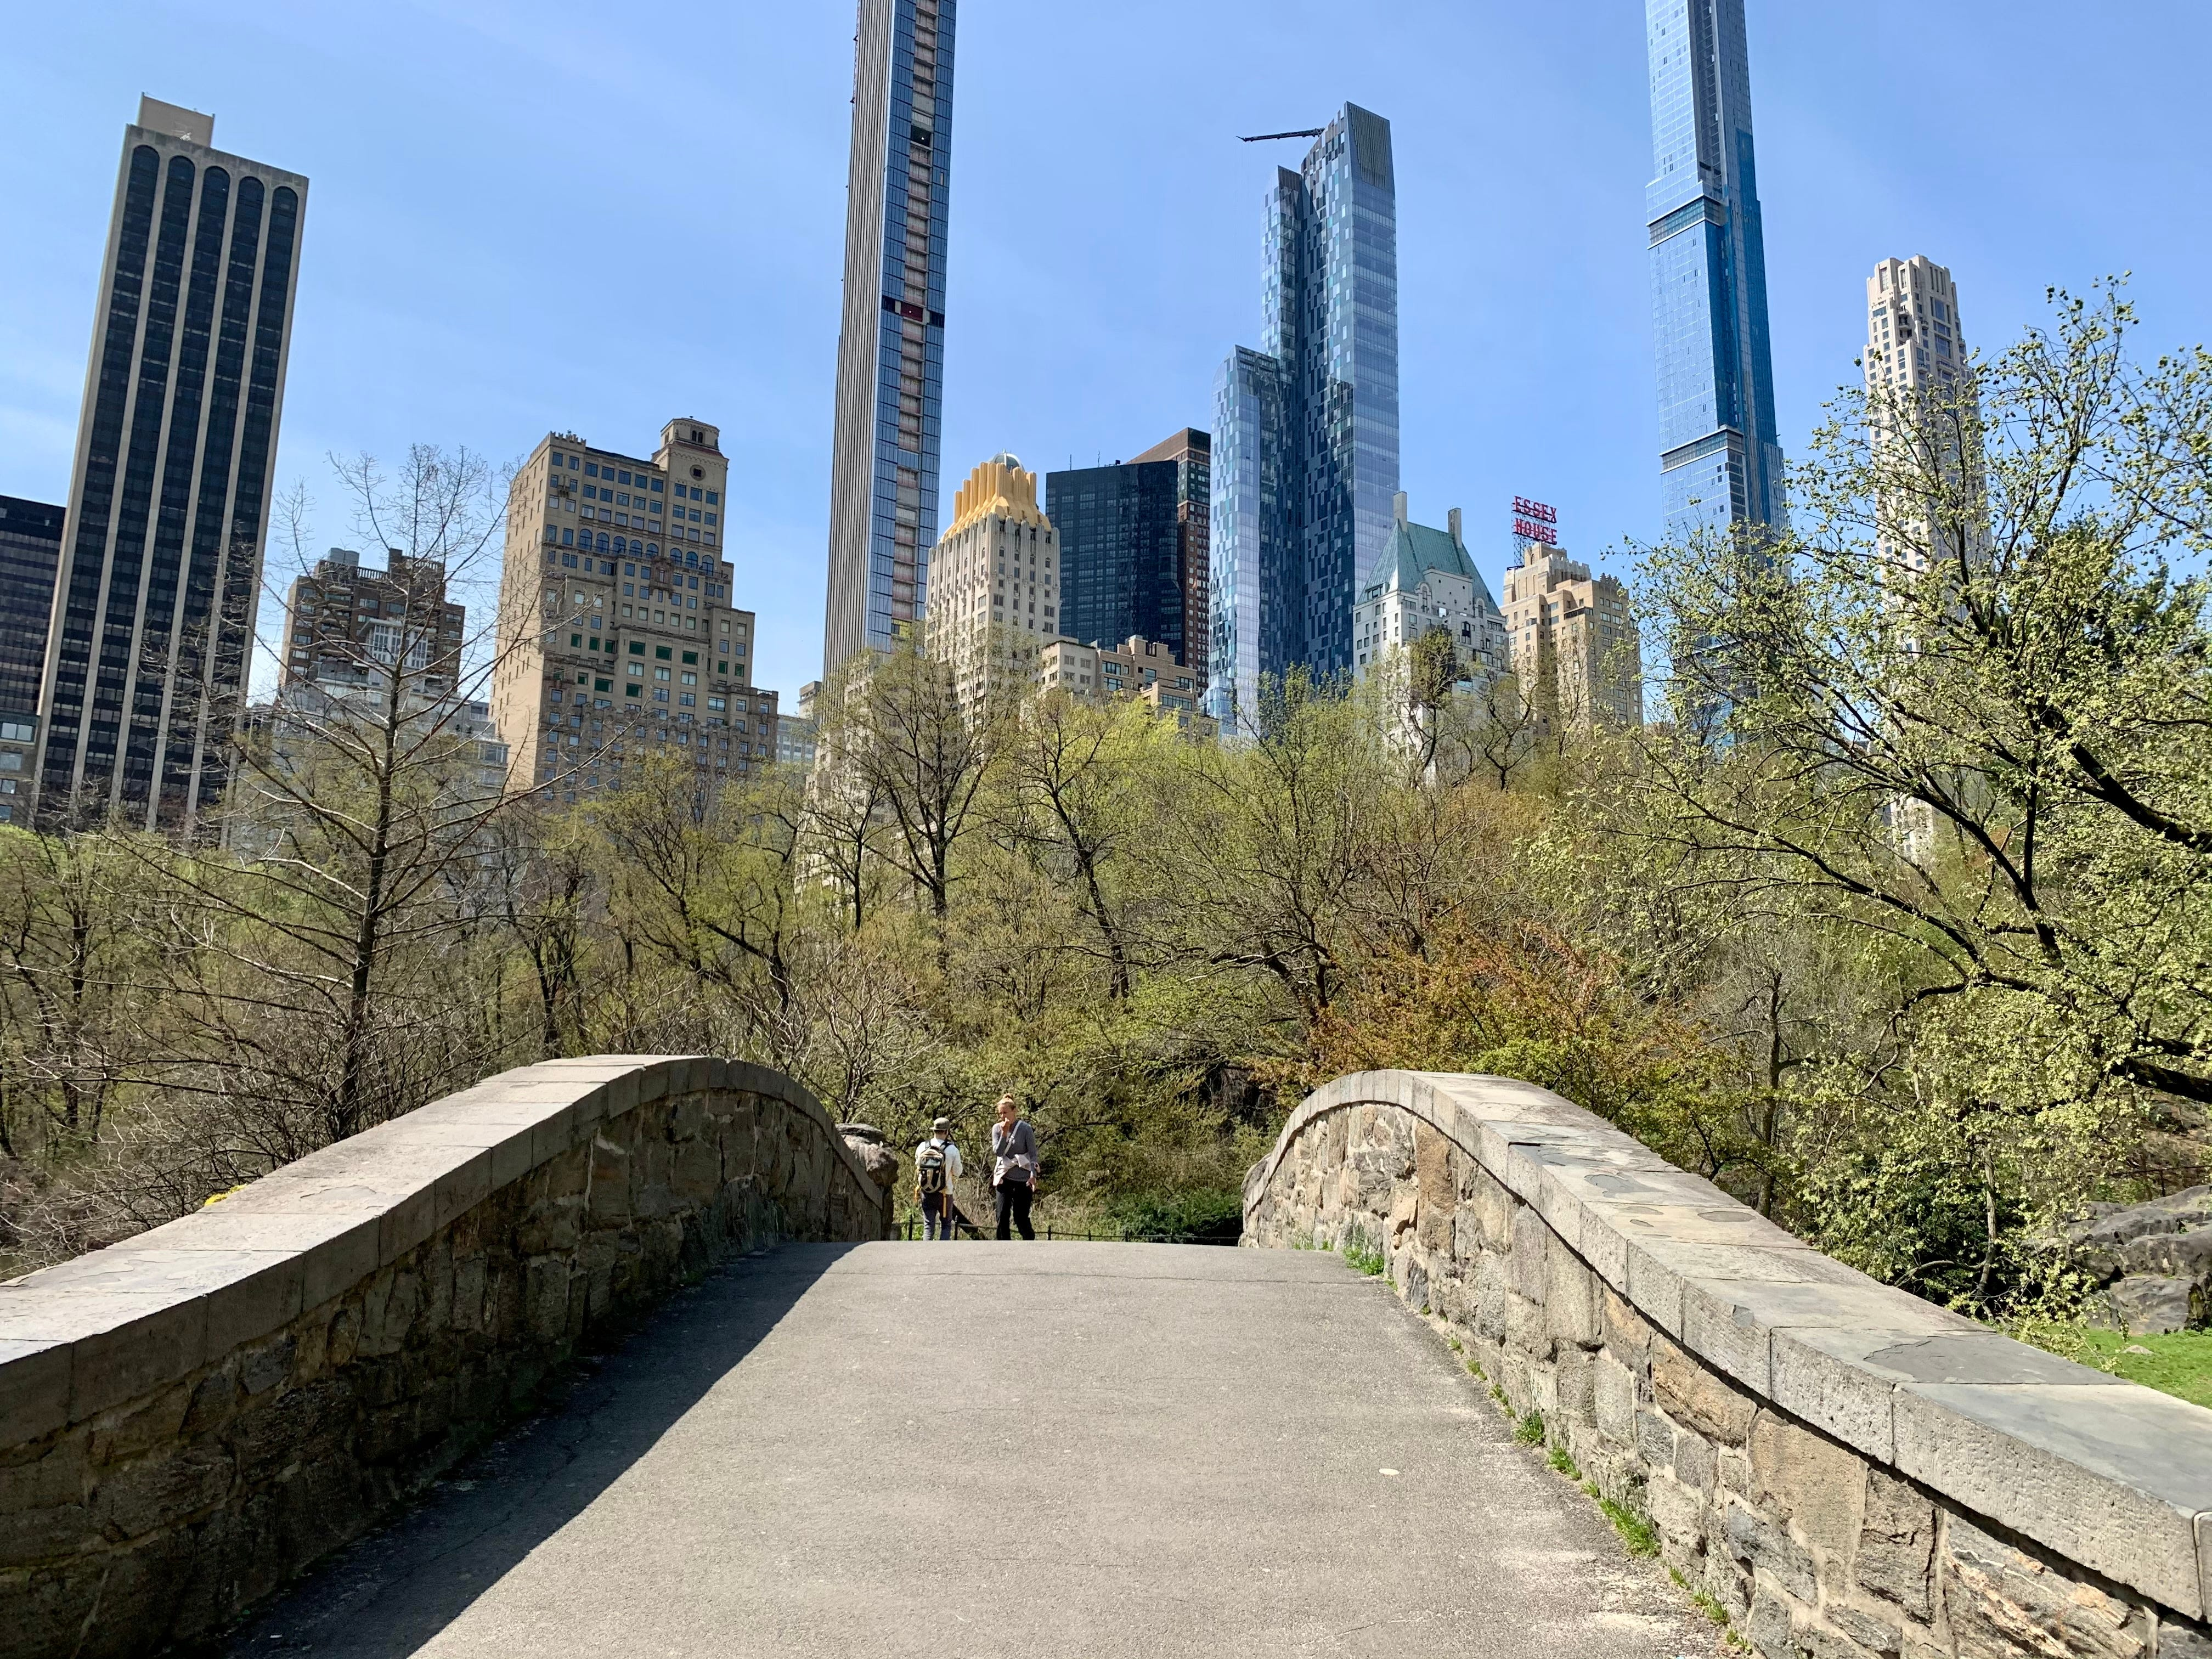 Central Park is starting to bloom for spring 2021.